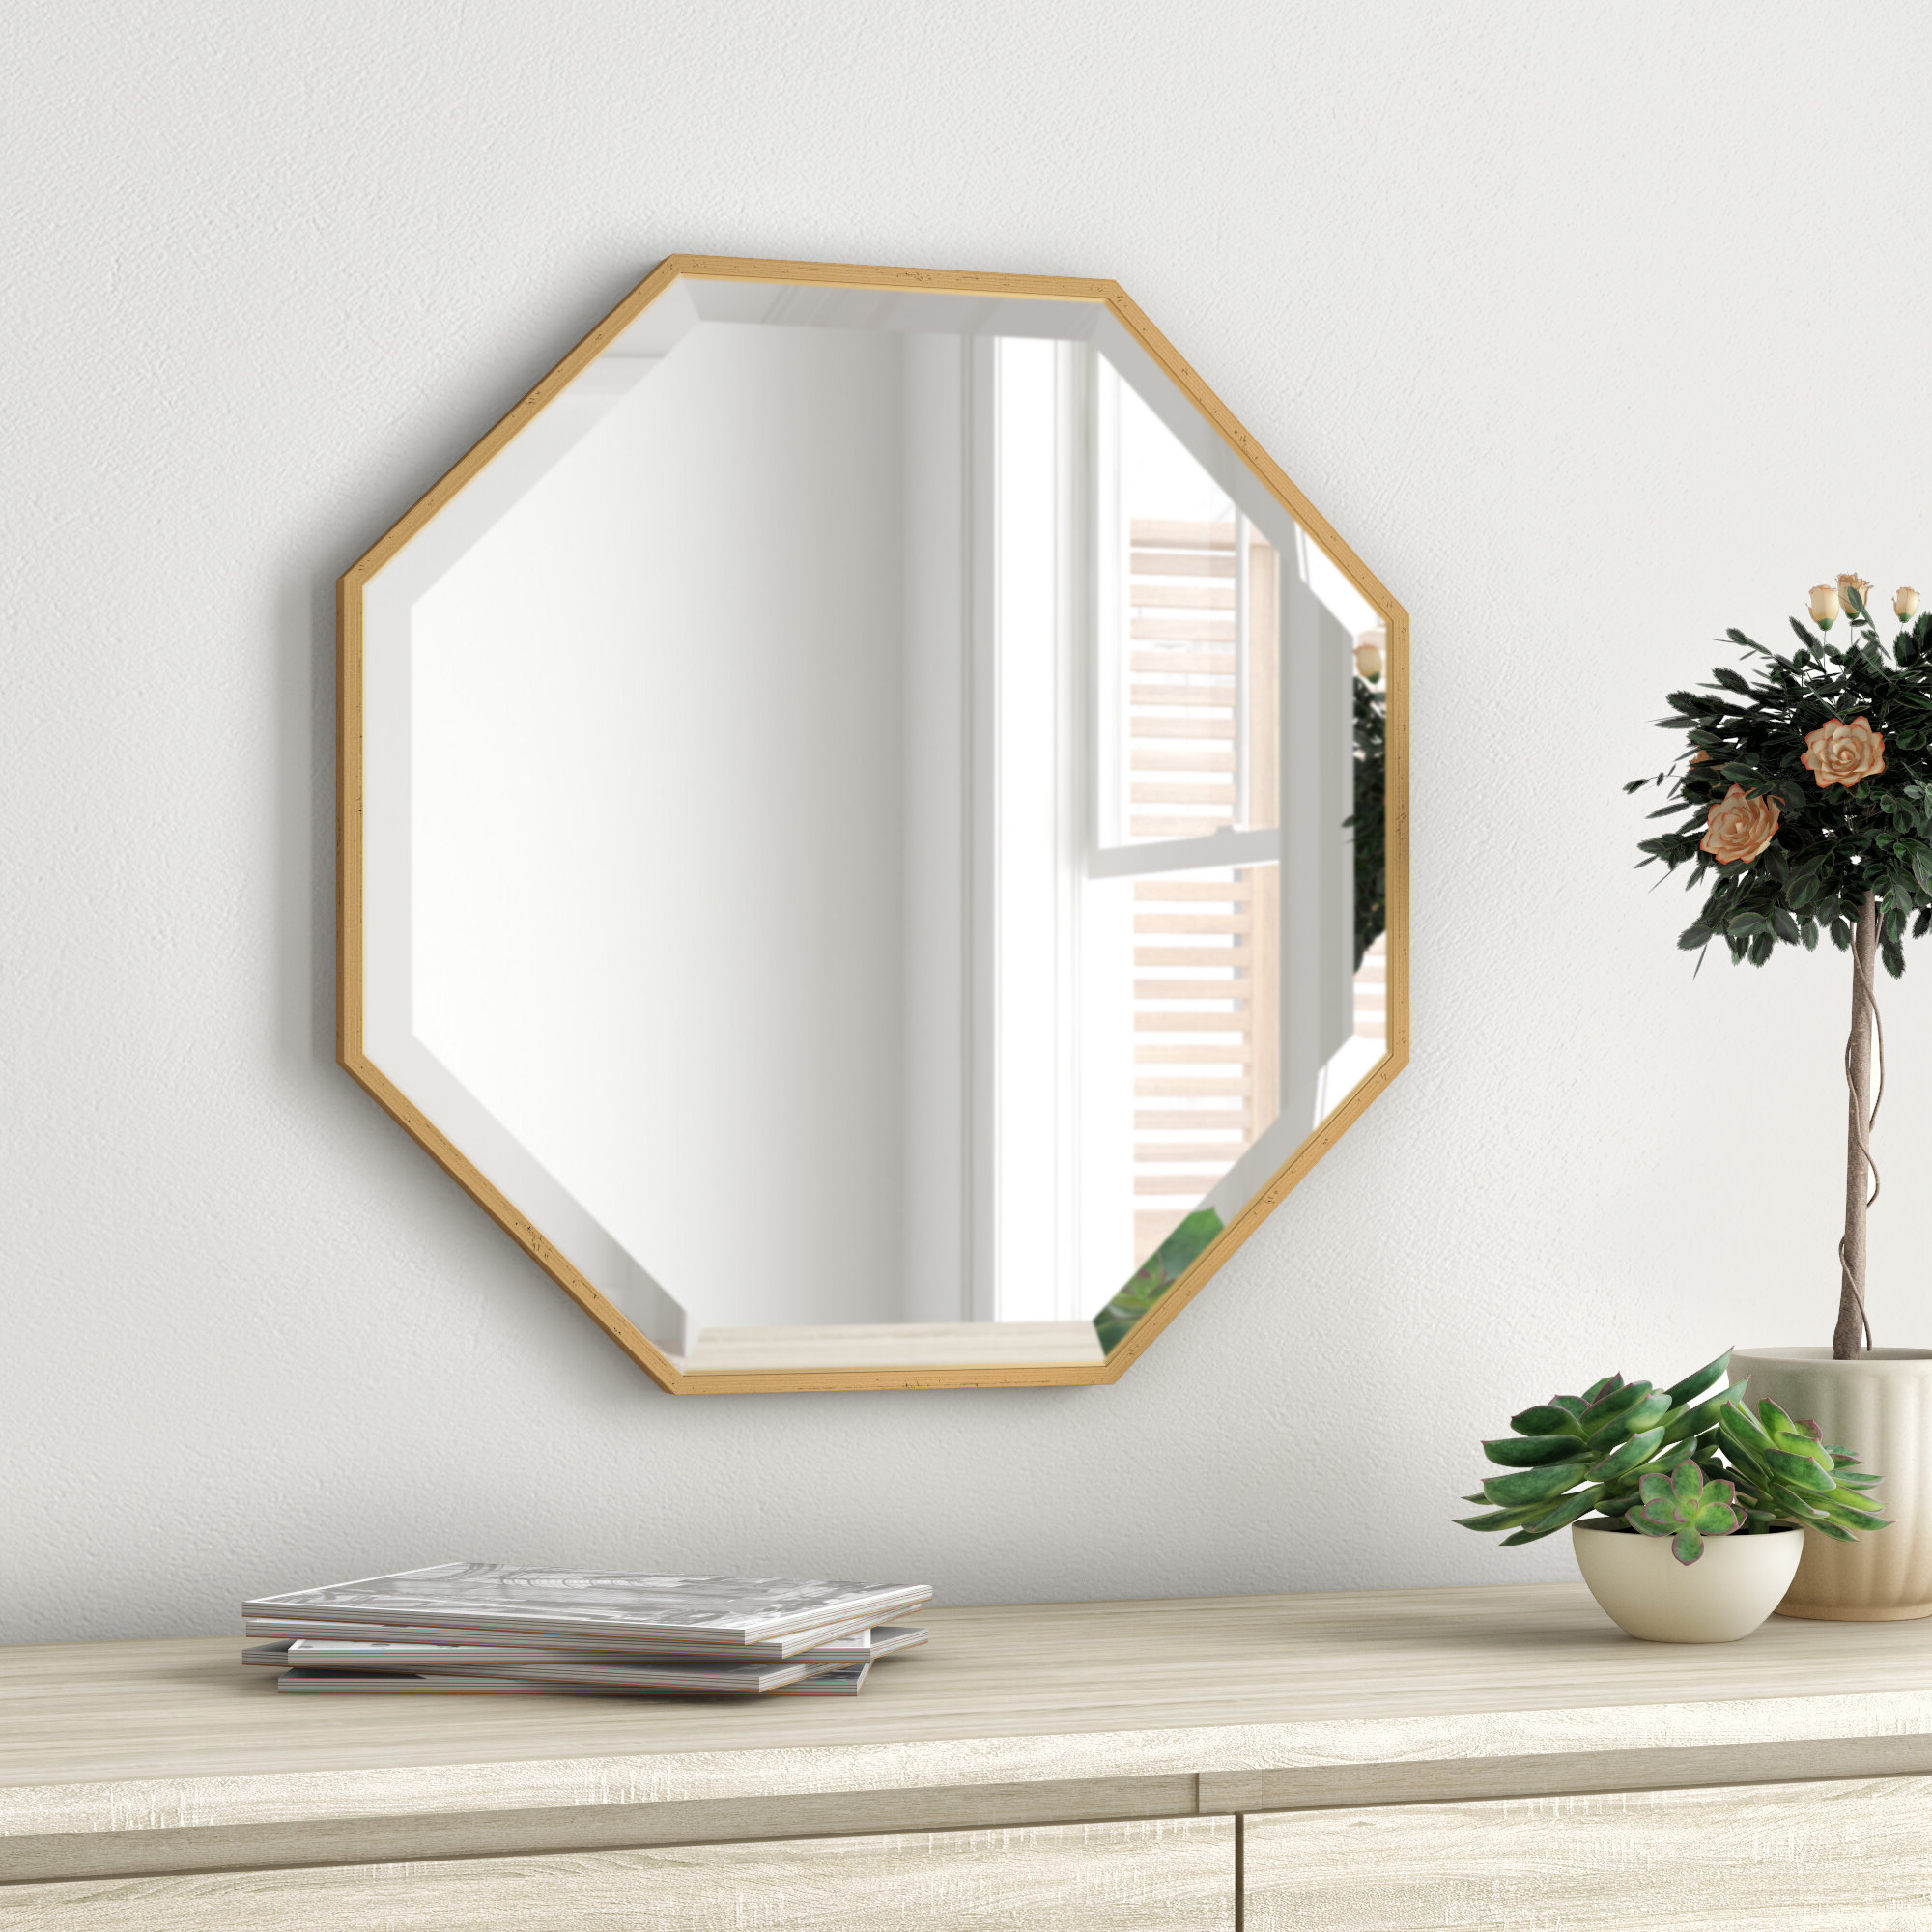 Morganton Modern & Contemporary Beveled Accent Mirror For Well Known Shildon Beveled Accent Mirrors (View 6 of 20)